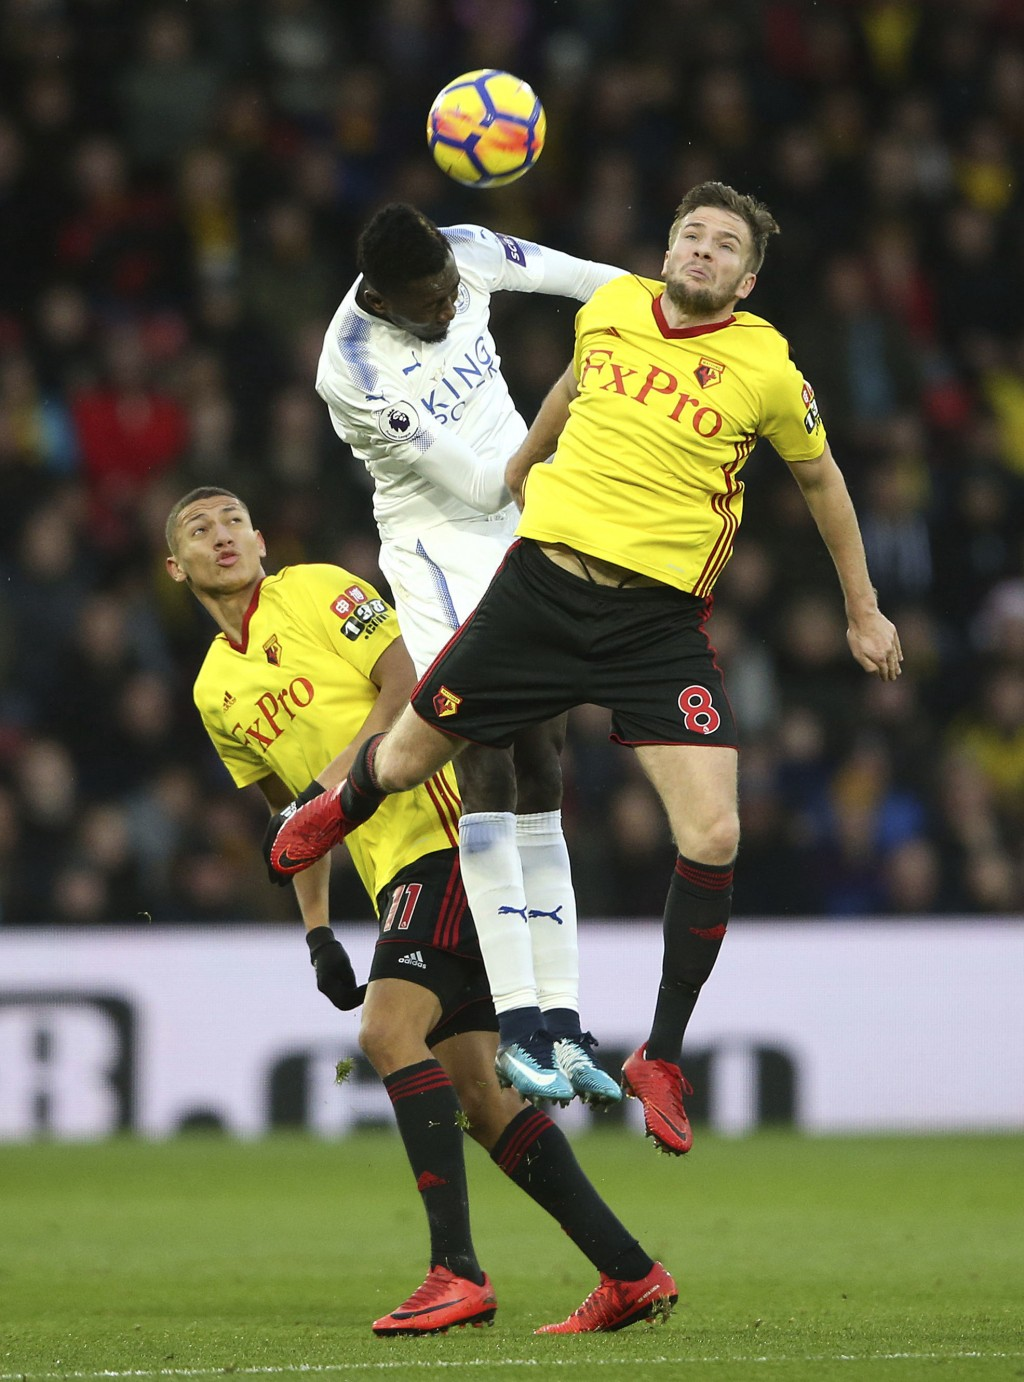 Leicester City's Wilfred Ndidi, centre, and Watford's Tom Cleverley, right, battle for the ball during the English Premier League soccer match at Vica...